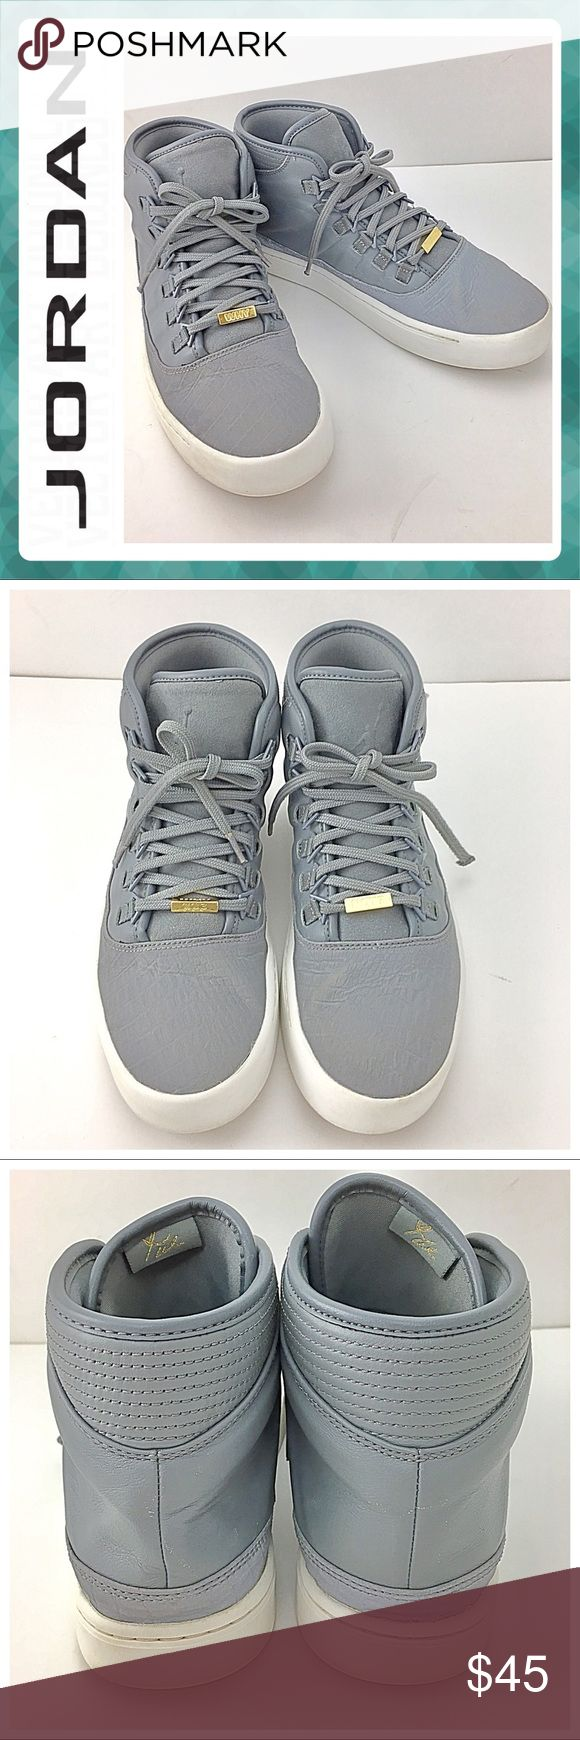 """JORDAN Westbrook 0 Cool Gray Sneaker 👟 JORDAN Westbrook 0 Cool Gray Sneaker 👟   Size 9.5 / Style Code 768934-002 📌They are used condition with some wear & (See Photo 6 ) / Jordan Logo on the Tongue. / Front Gold """"Why"""" and """"Not"""" beautifully embossed in the metal. This high ankle Kicks features a clean  cool gray look with some fashionable indentations along the side.🍀🌸🌼 Jordan Shoes Sneakers"""